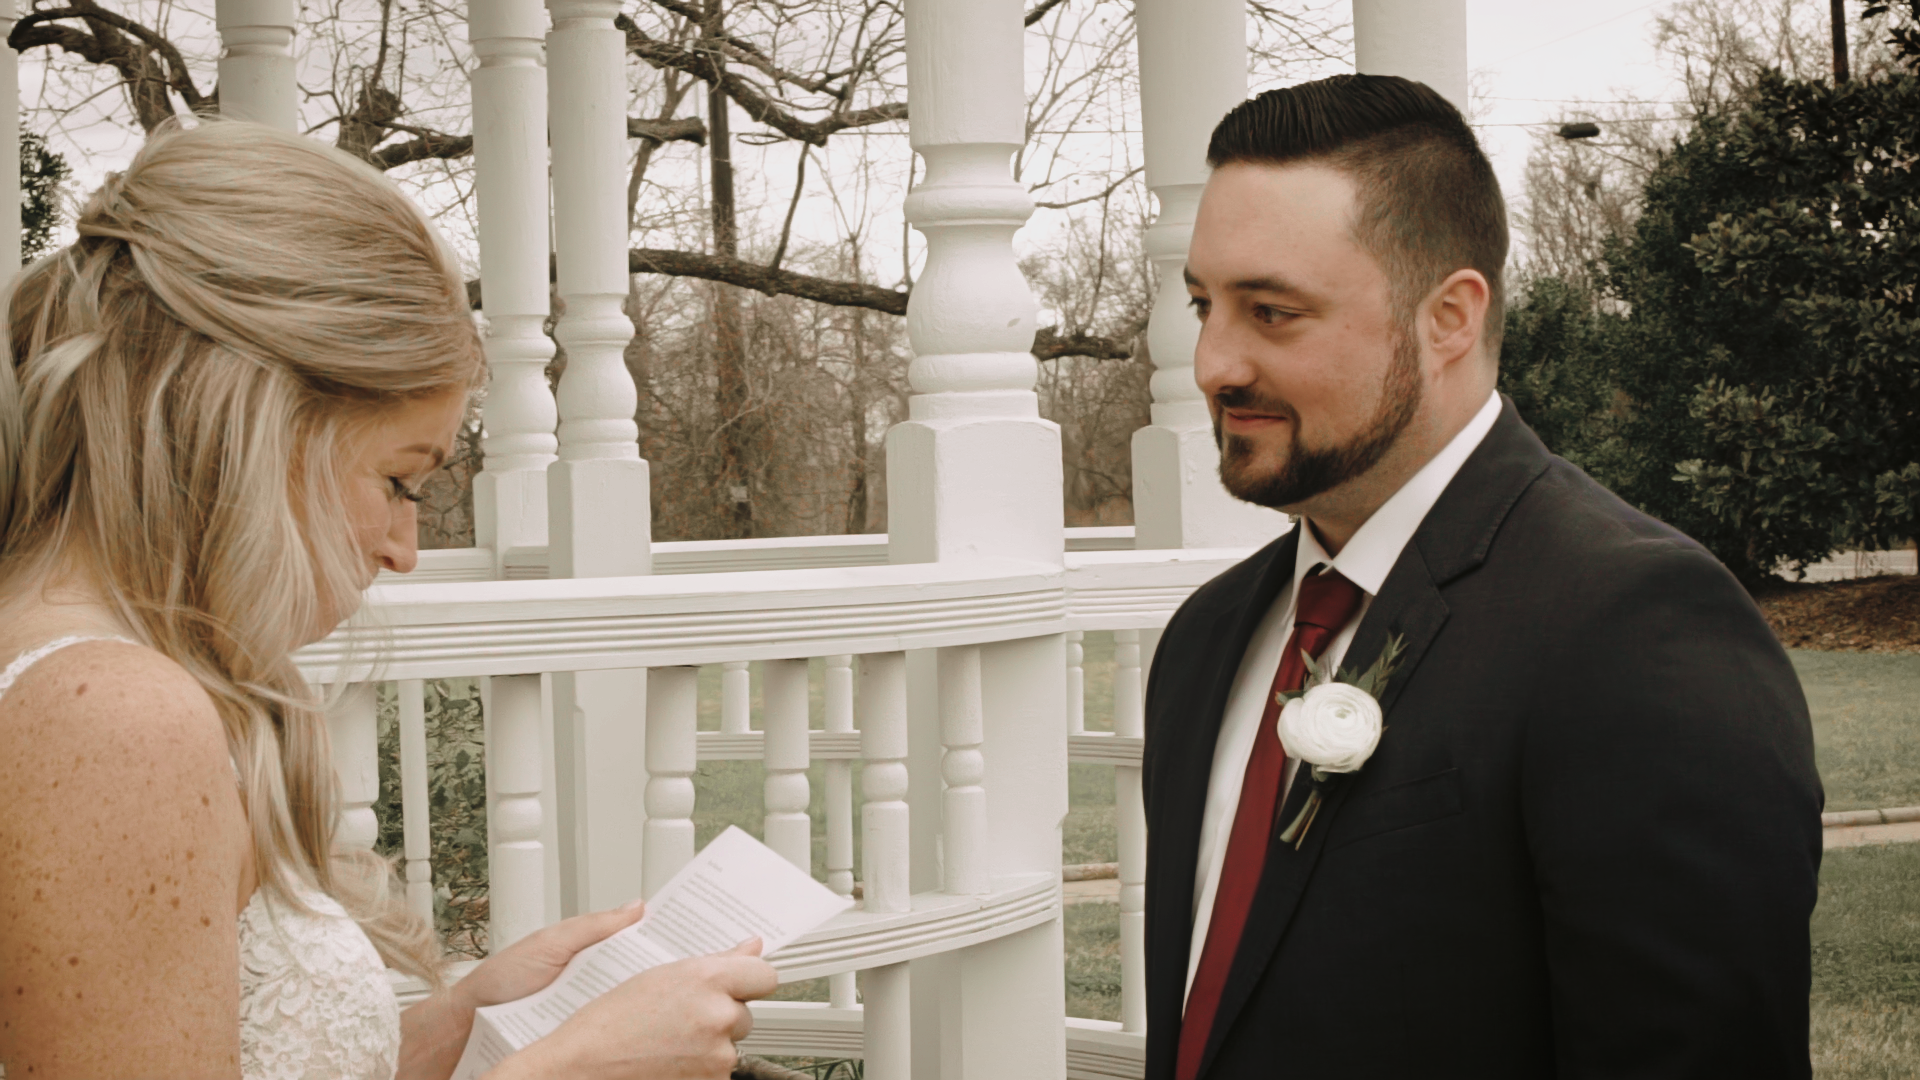 Barr_Mansion_Austin_Wedding_Videographer_New_Beginnings_Films_17.png